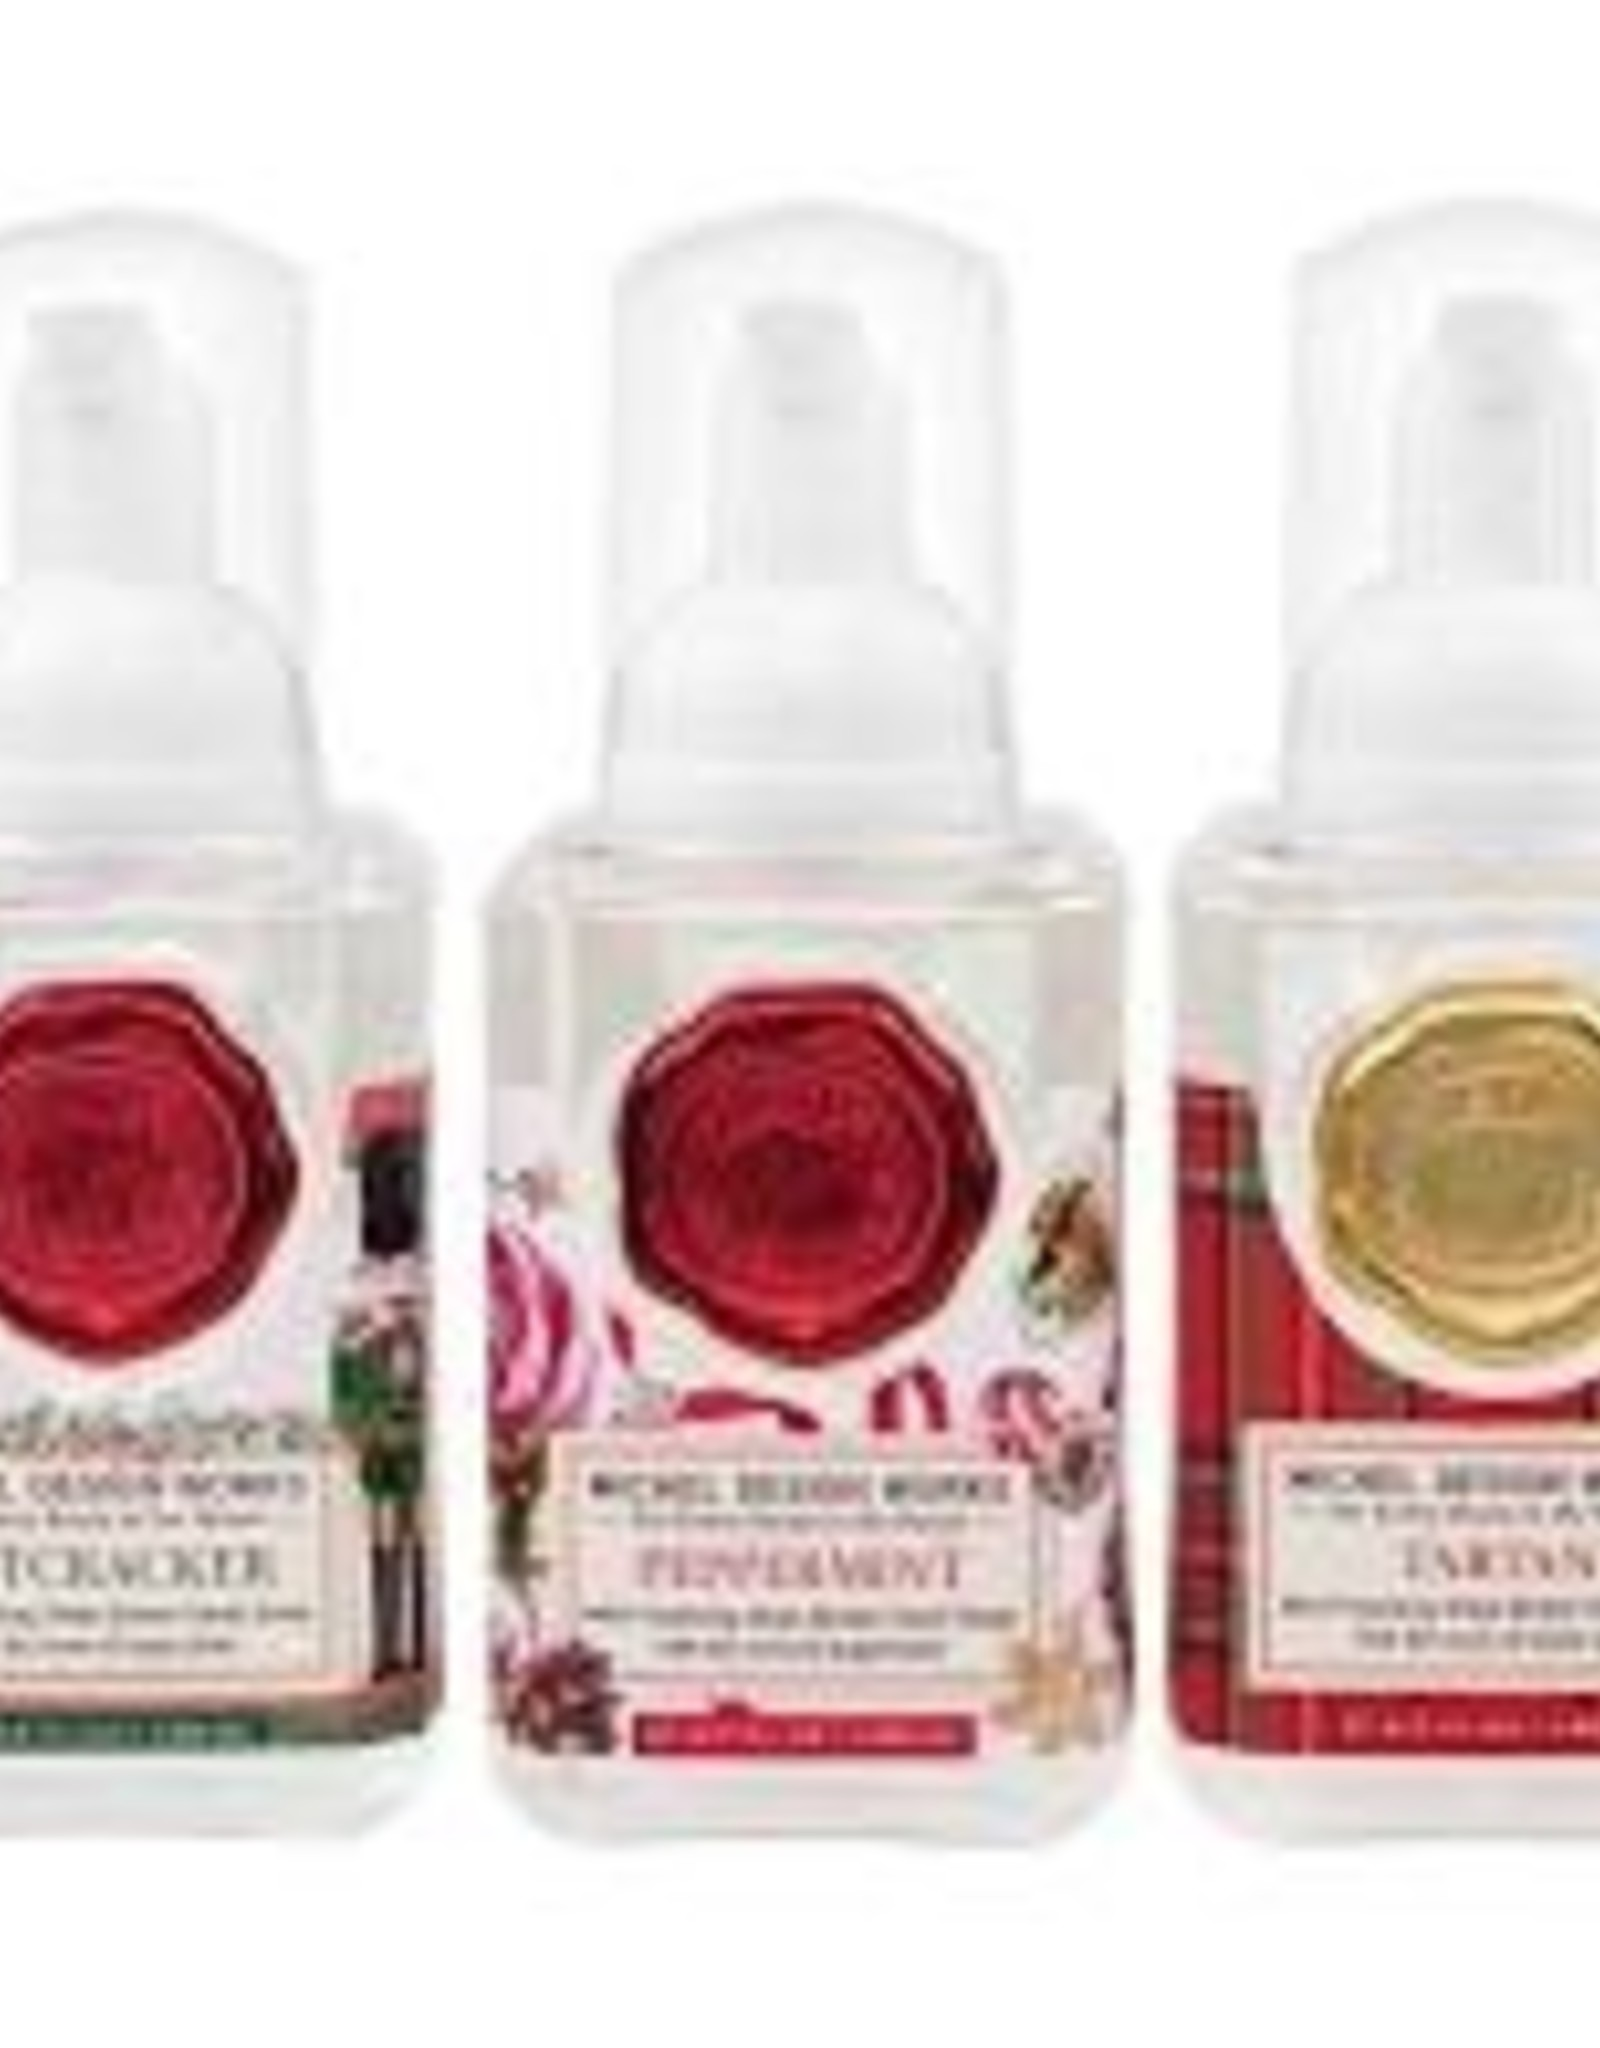 MichelDesign Works Mini Foaming Soaps, Peppermint, Tartan, Nutcracker